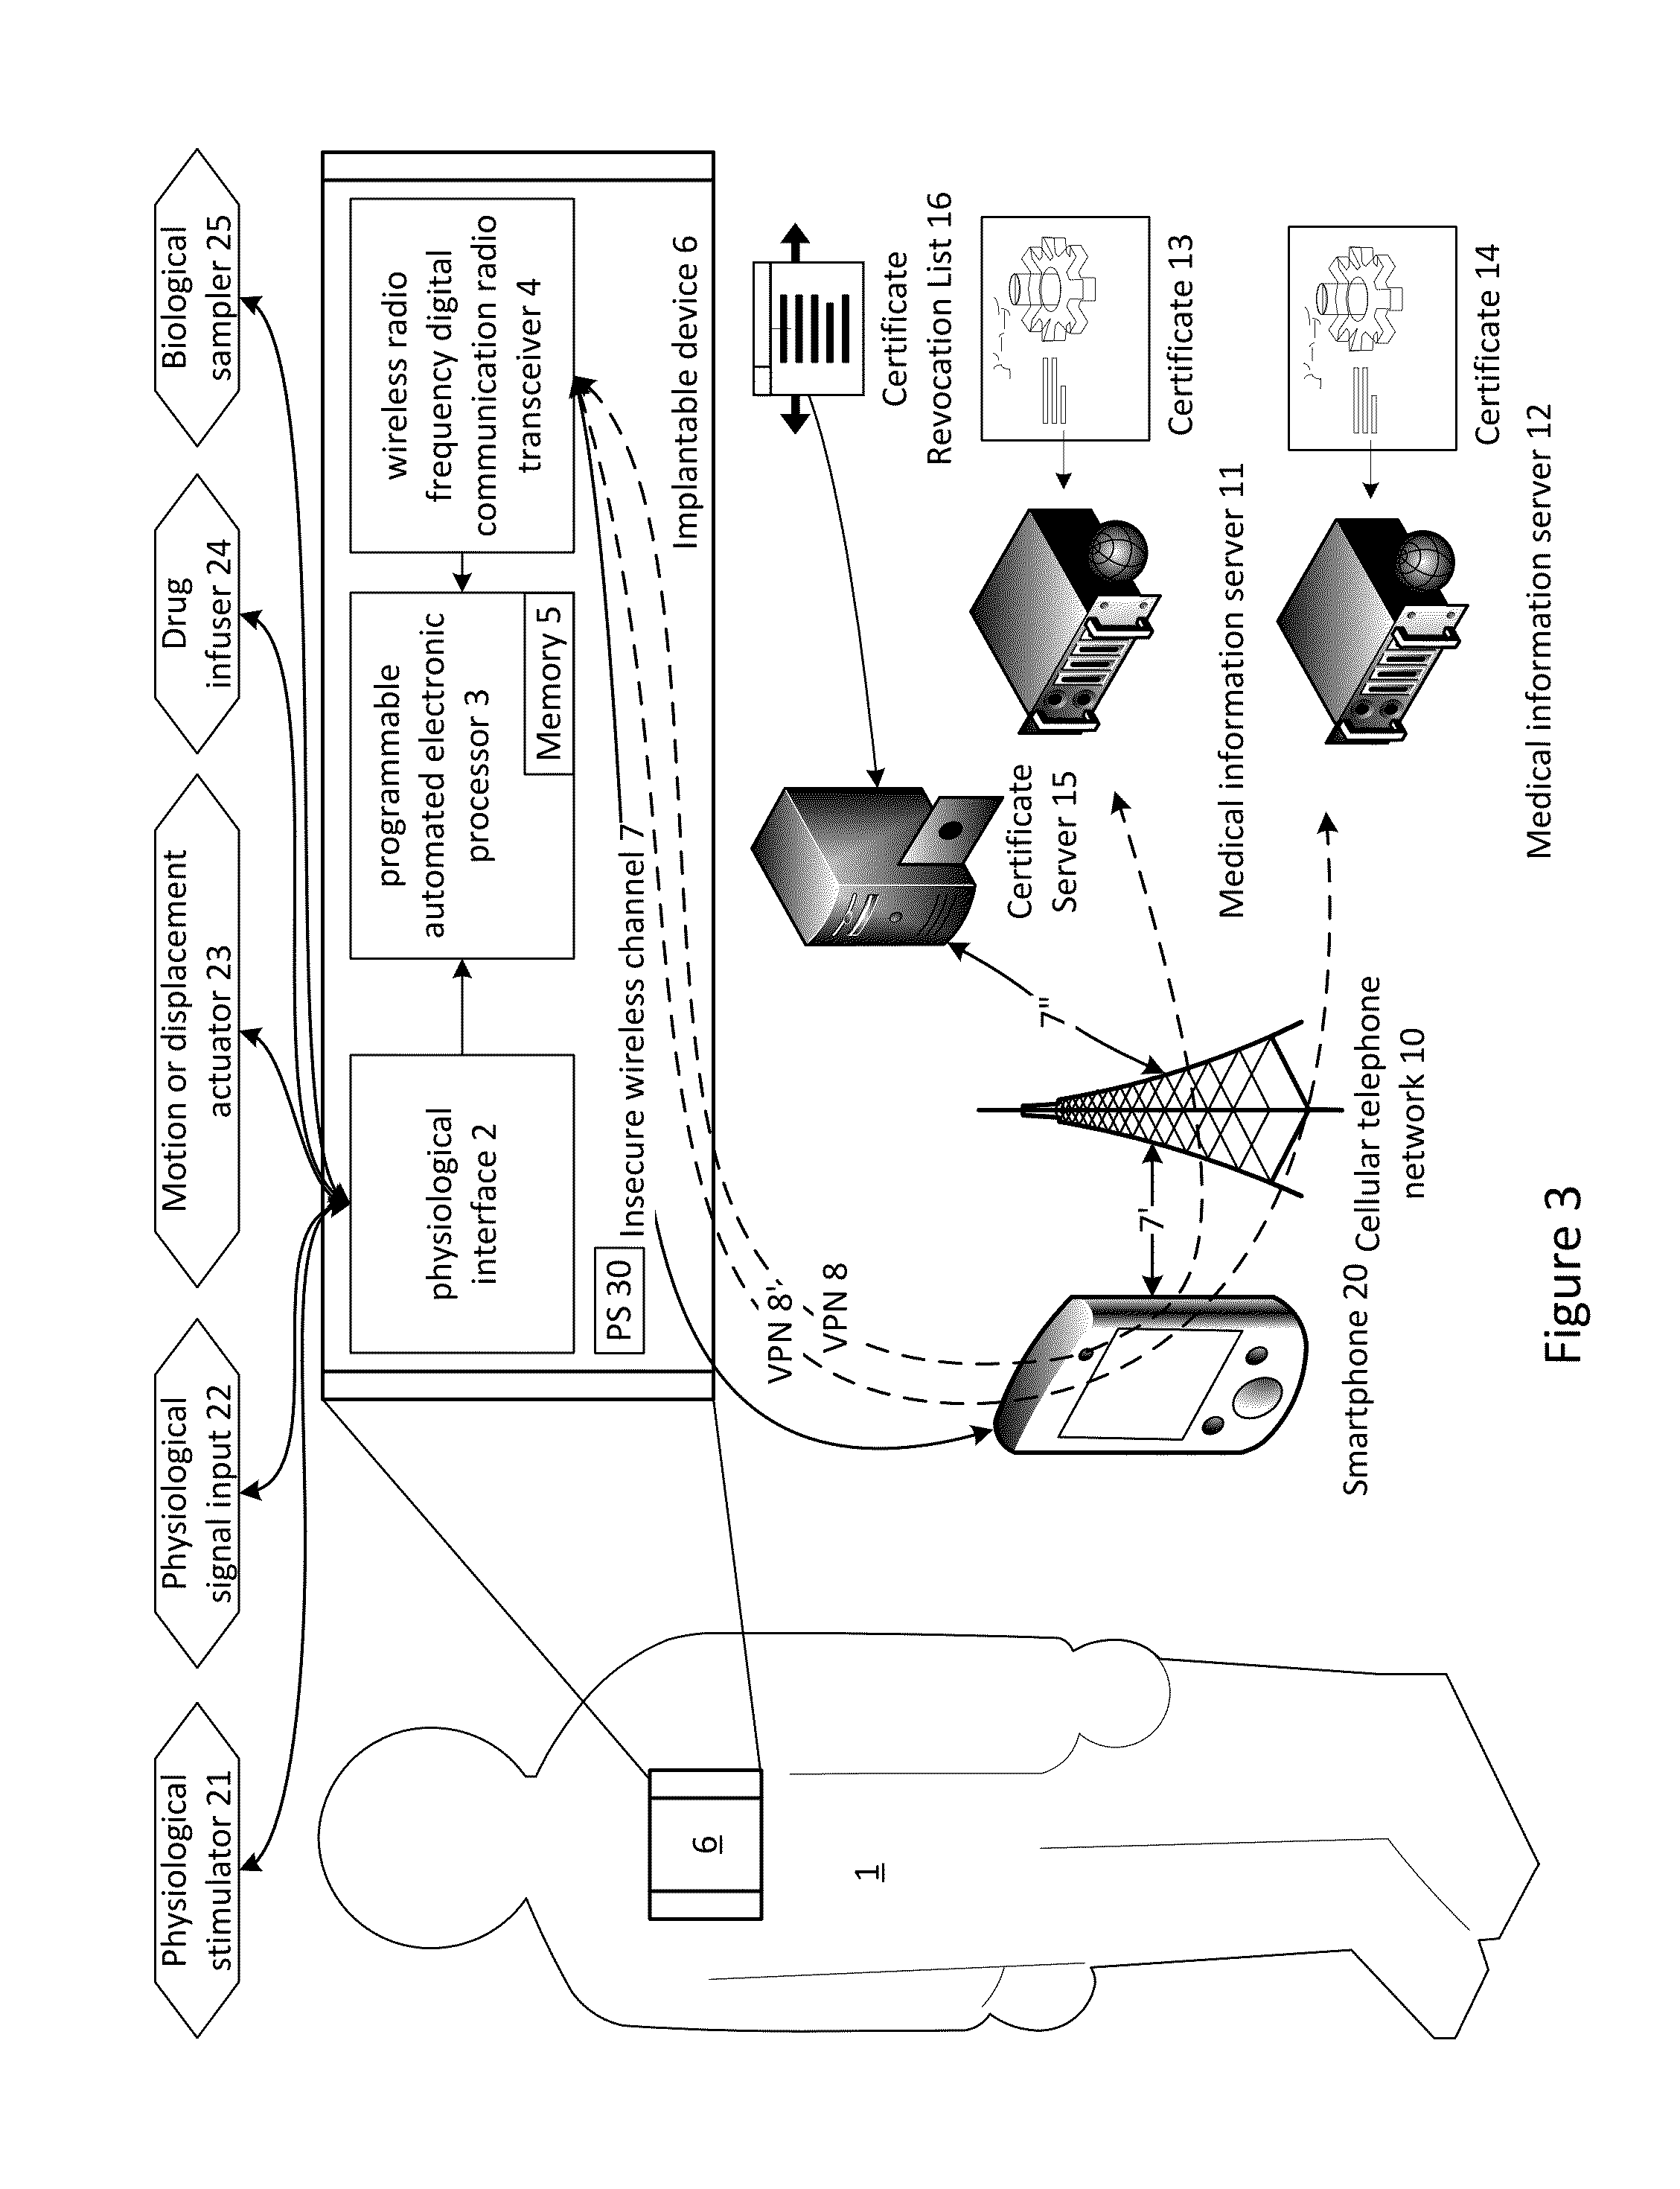 Patent Us 9215075 B1 Power Supply Current Limiter Circuit Radioelectronicscom Images